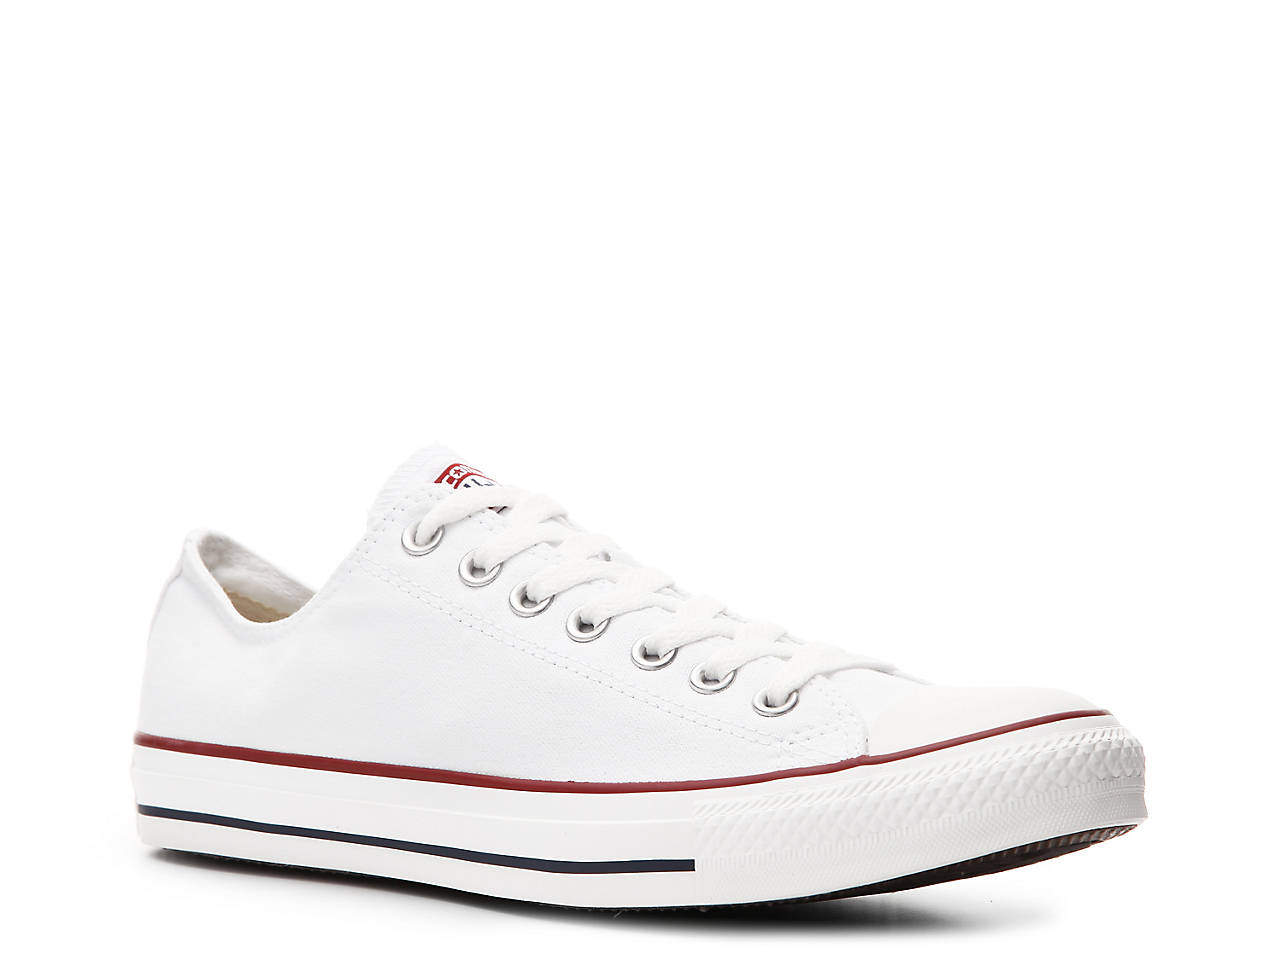 479230ac3339 Converse Chuck Taylor All Star Sneaker - Men s Men s Shoes